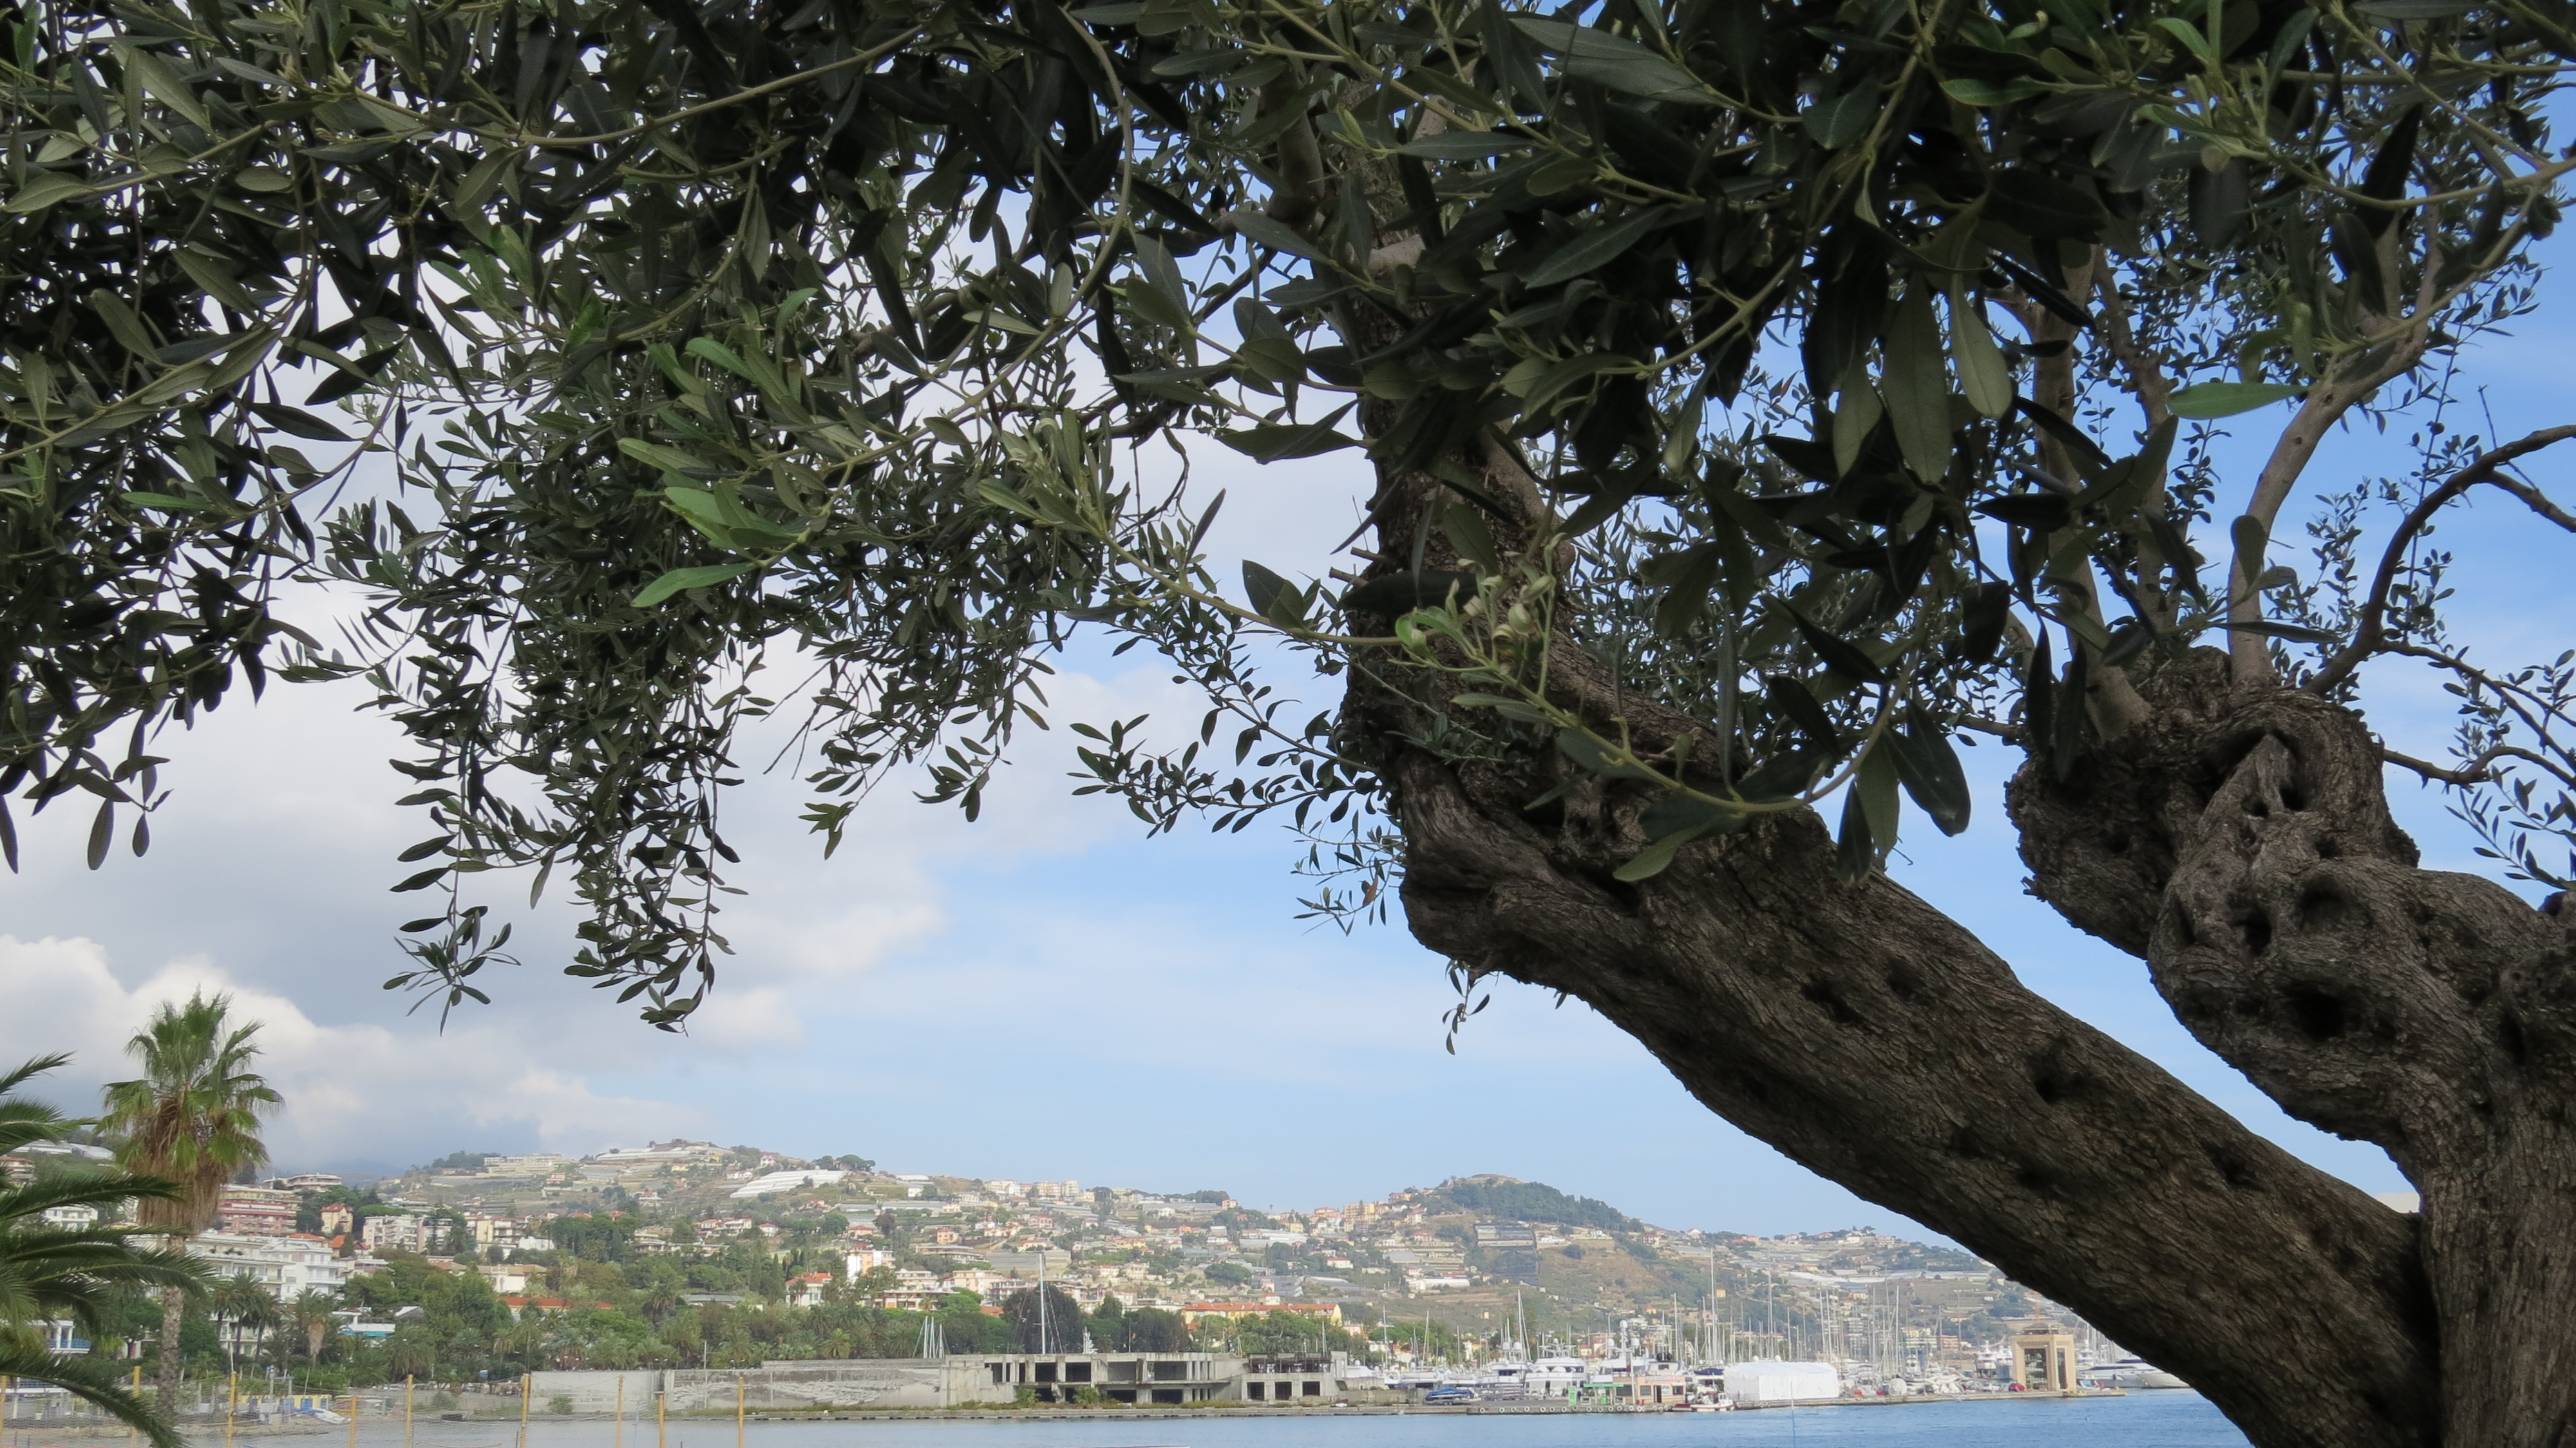 Sanremo tree over view